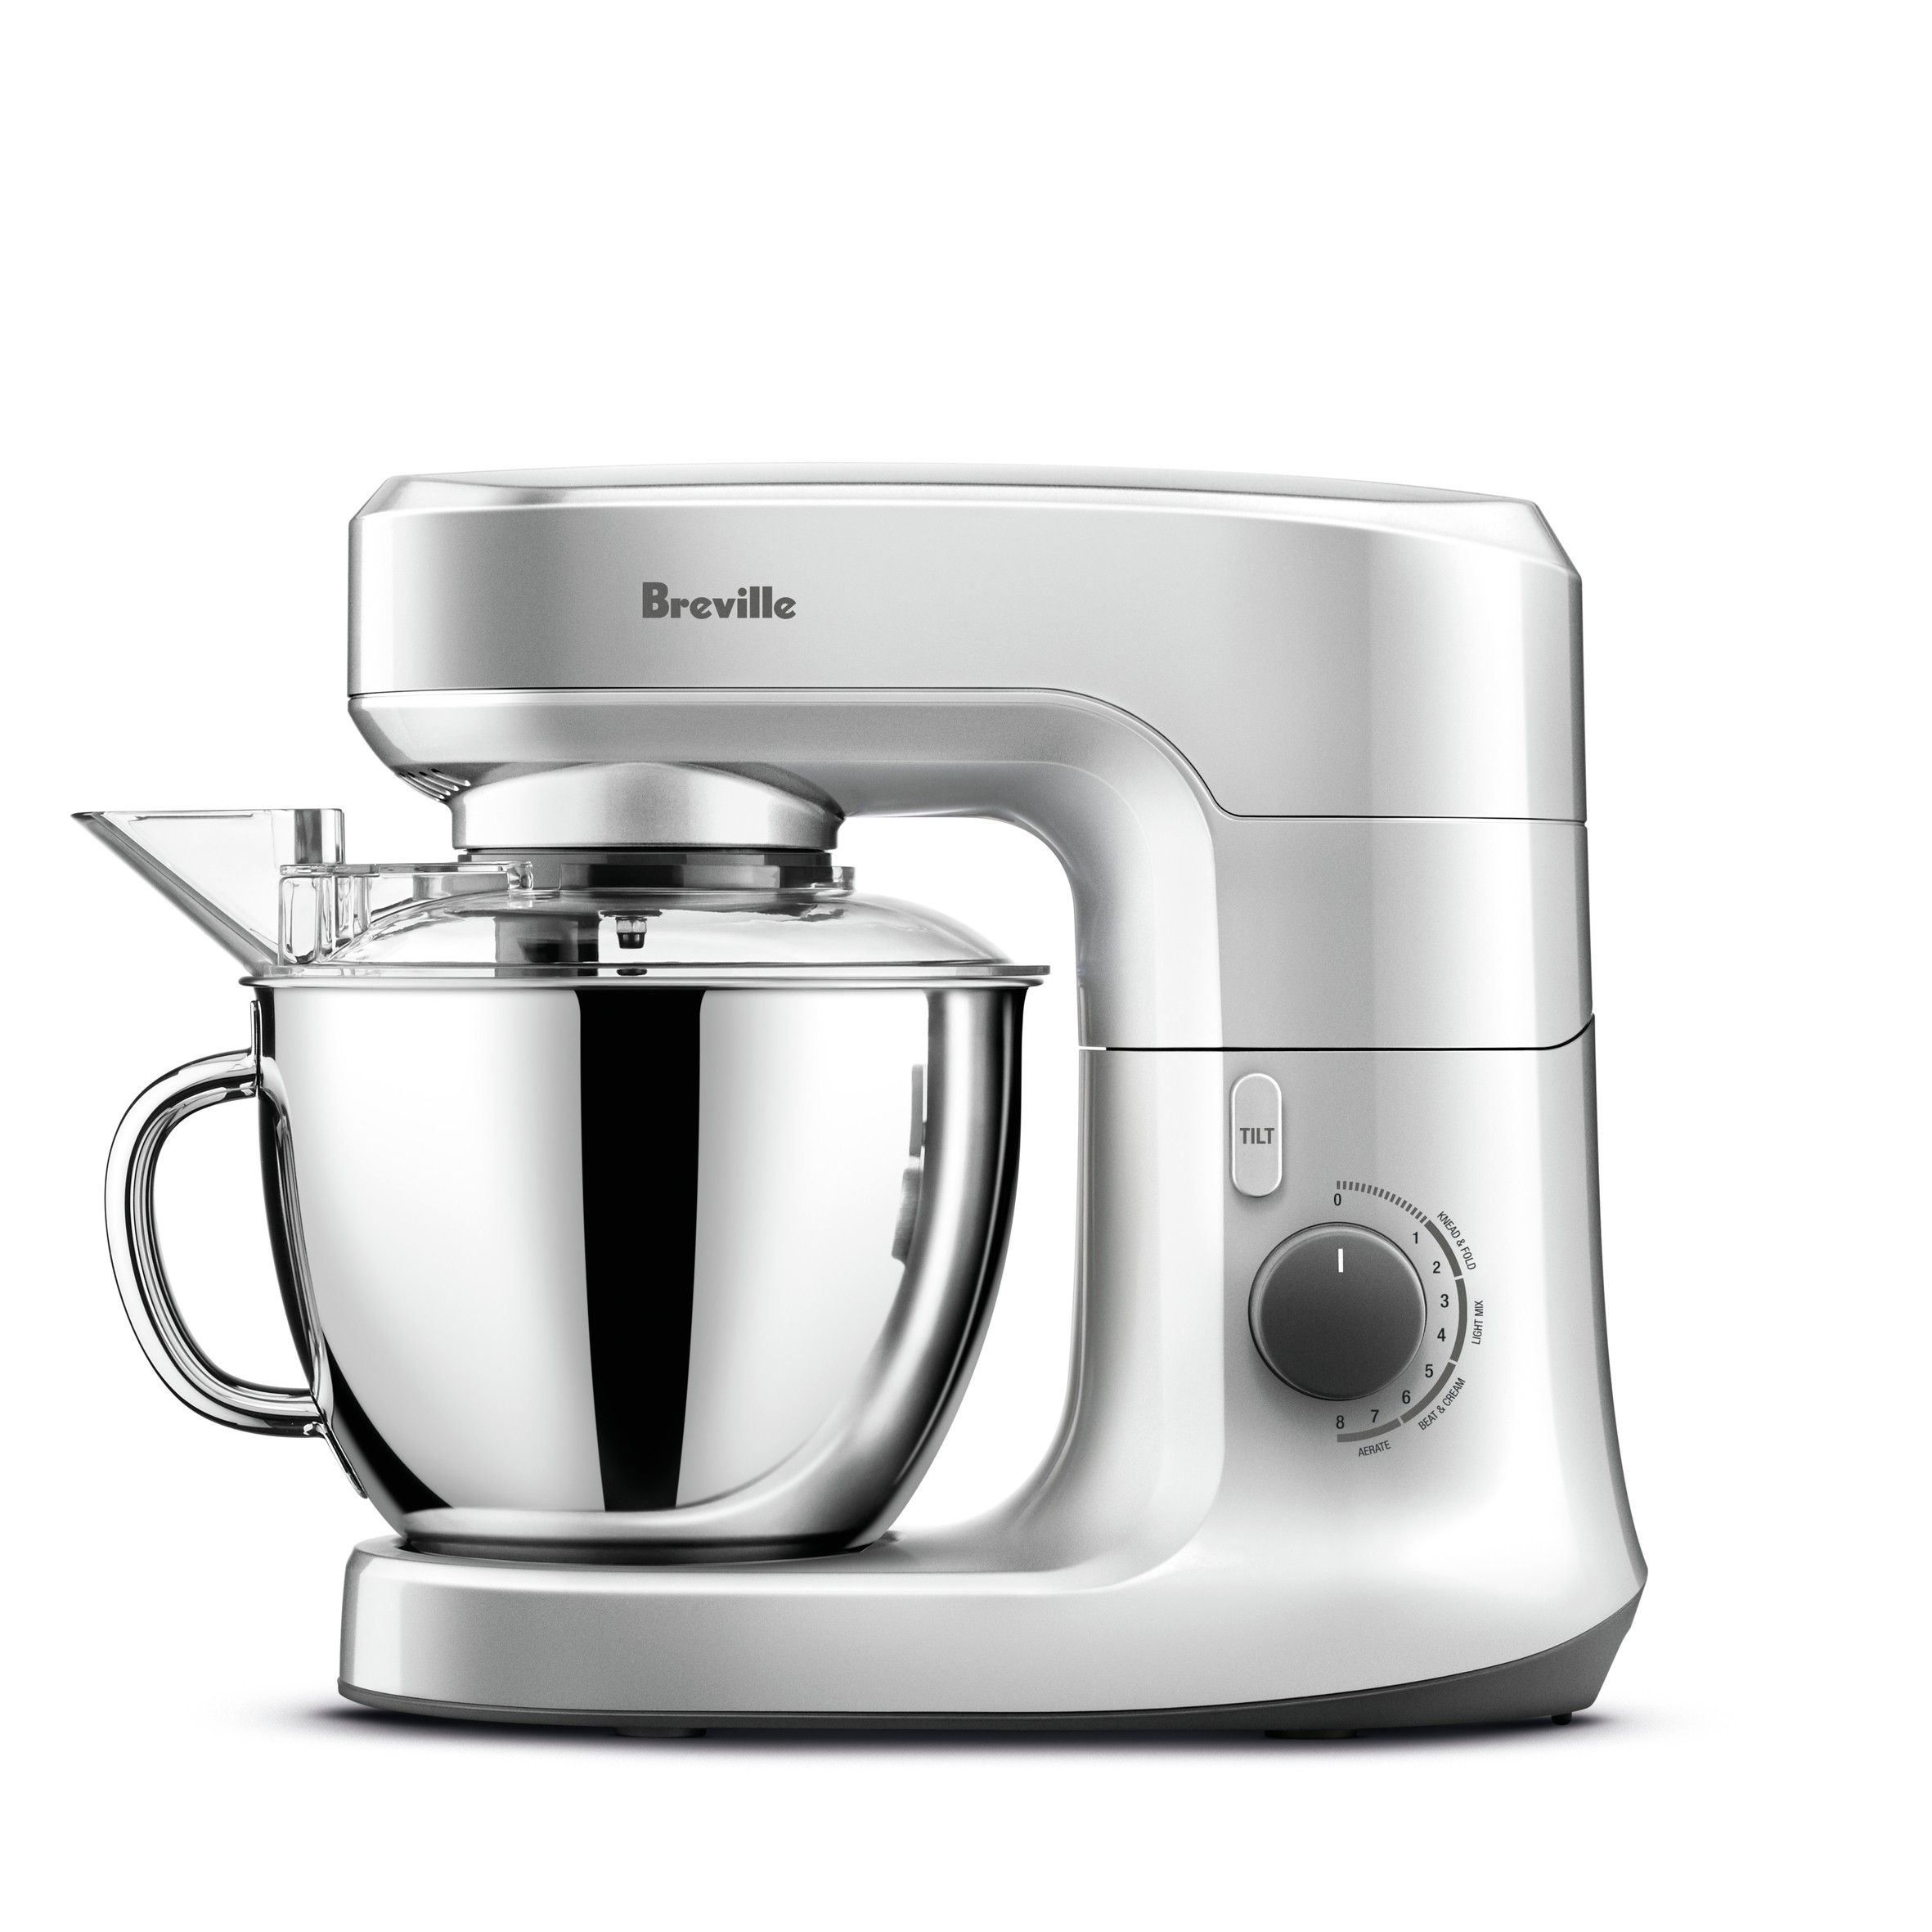 Breville Kitchen Machine | Stand mixer | Pinterest | Kitchen machine